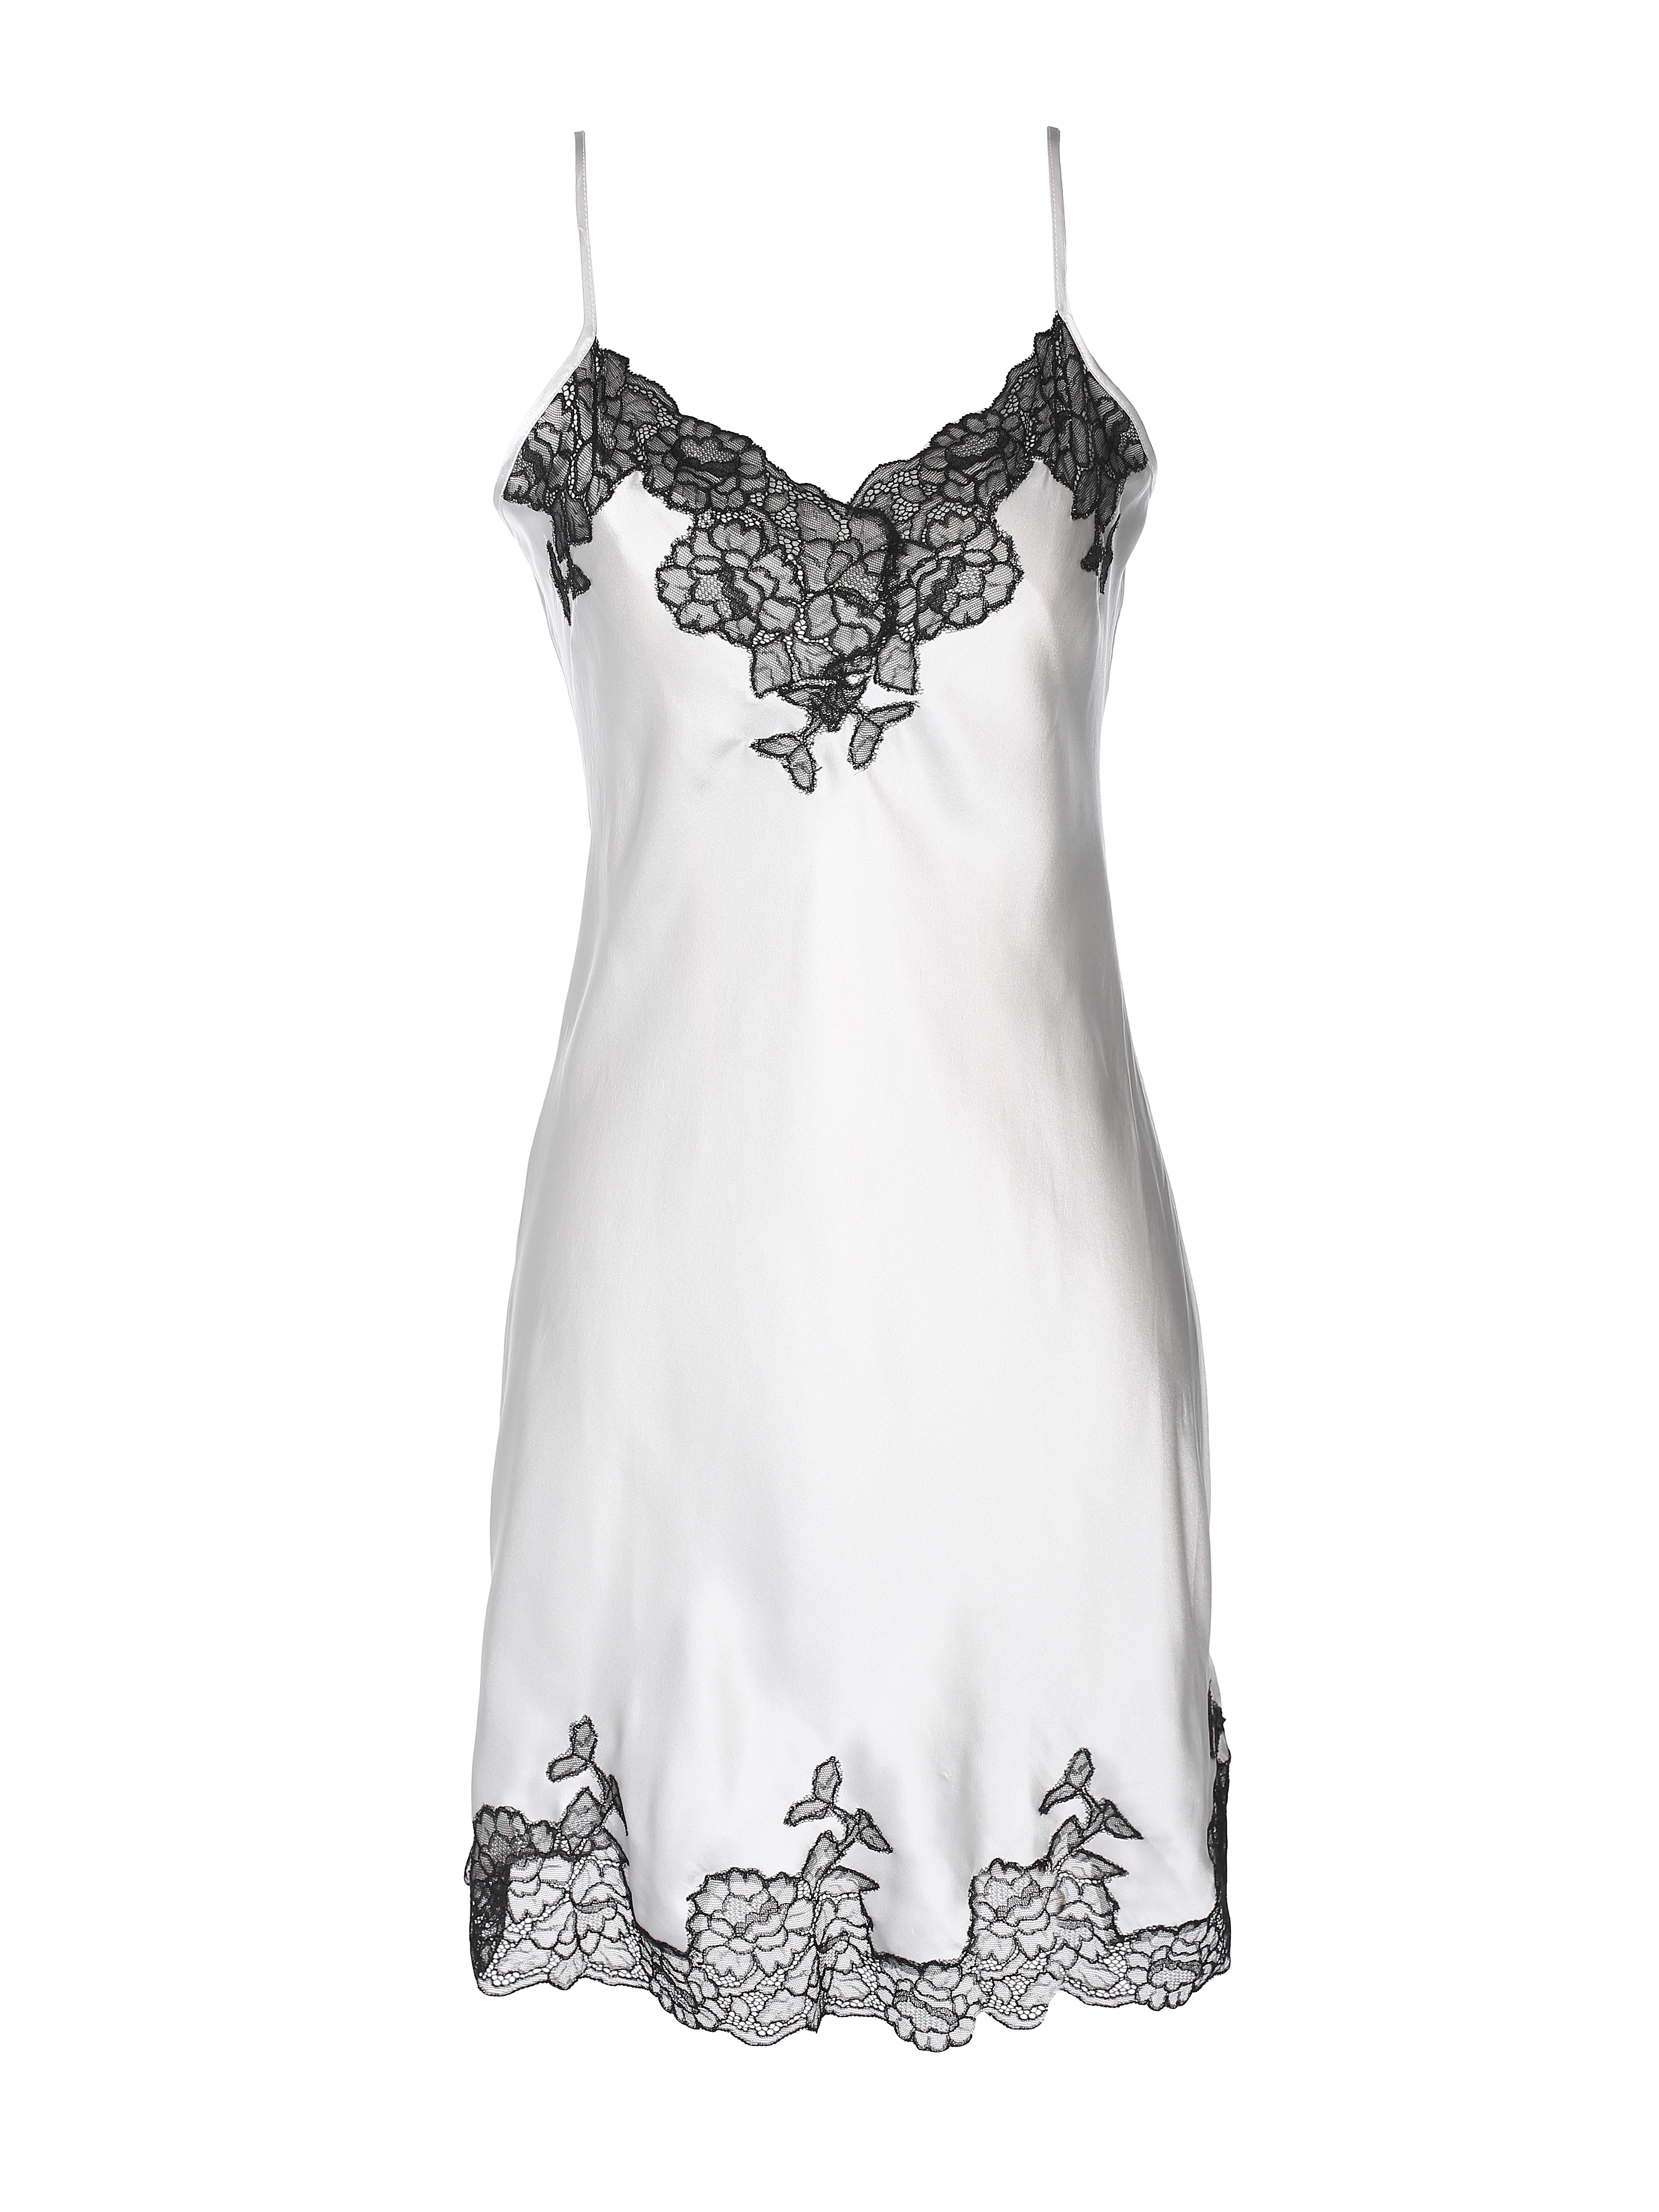 Silk & Lace Babydoll by Lucia Berutto on curated-crowd.com